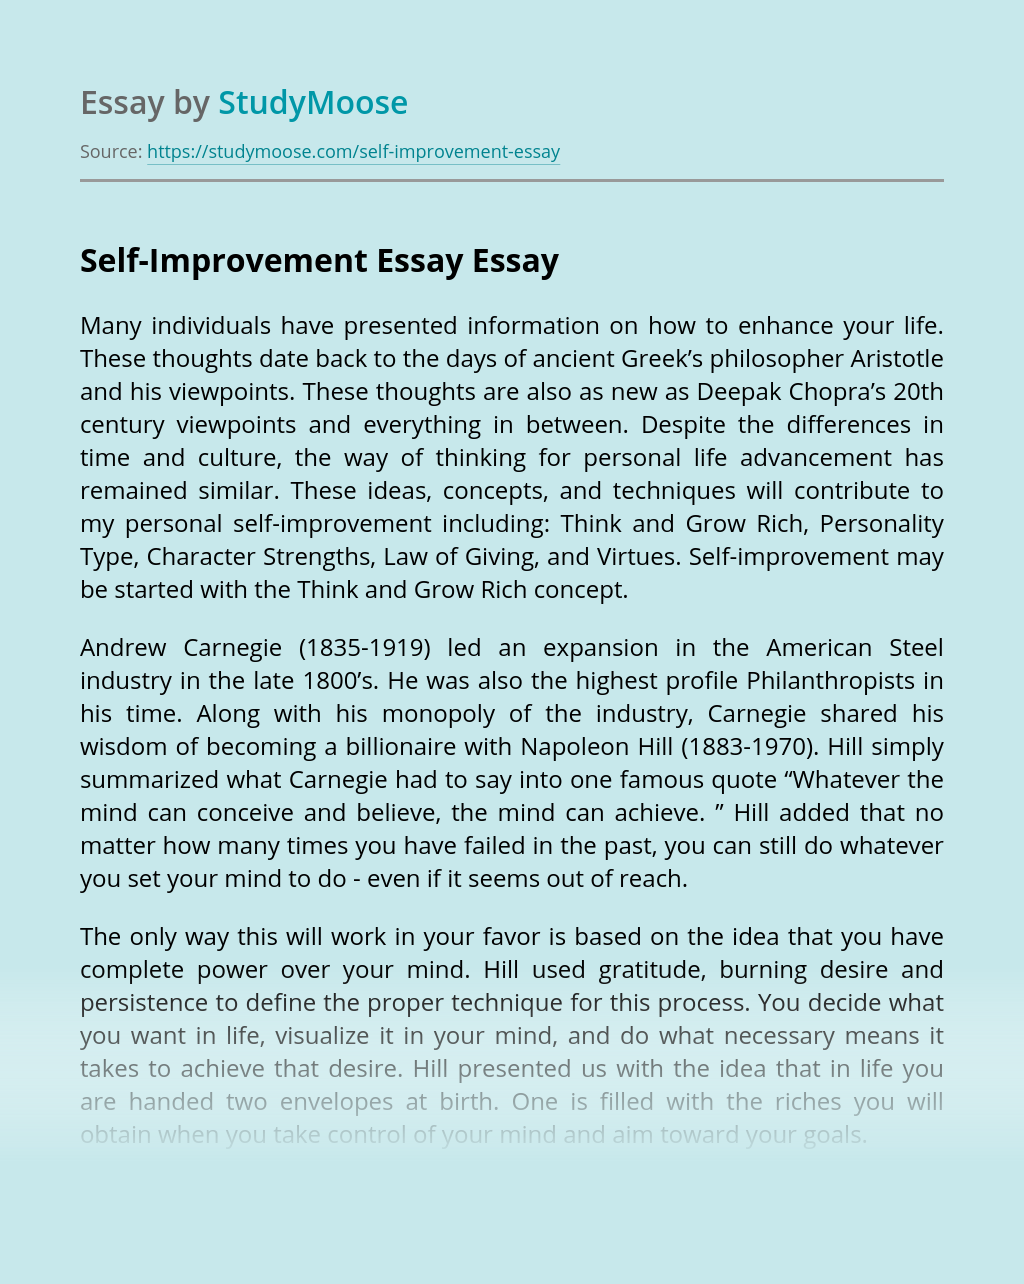 Self-Improvement Essay